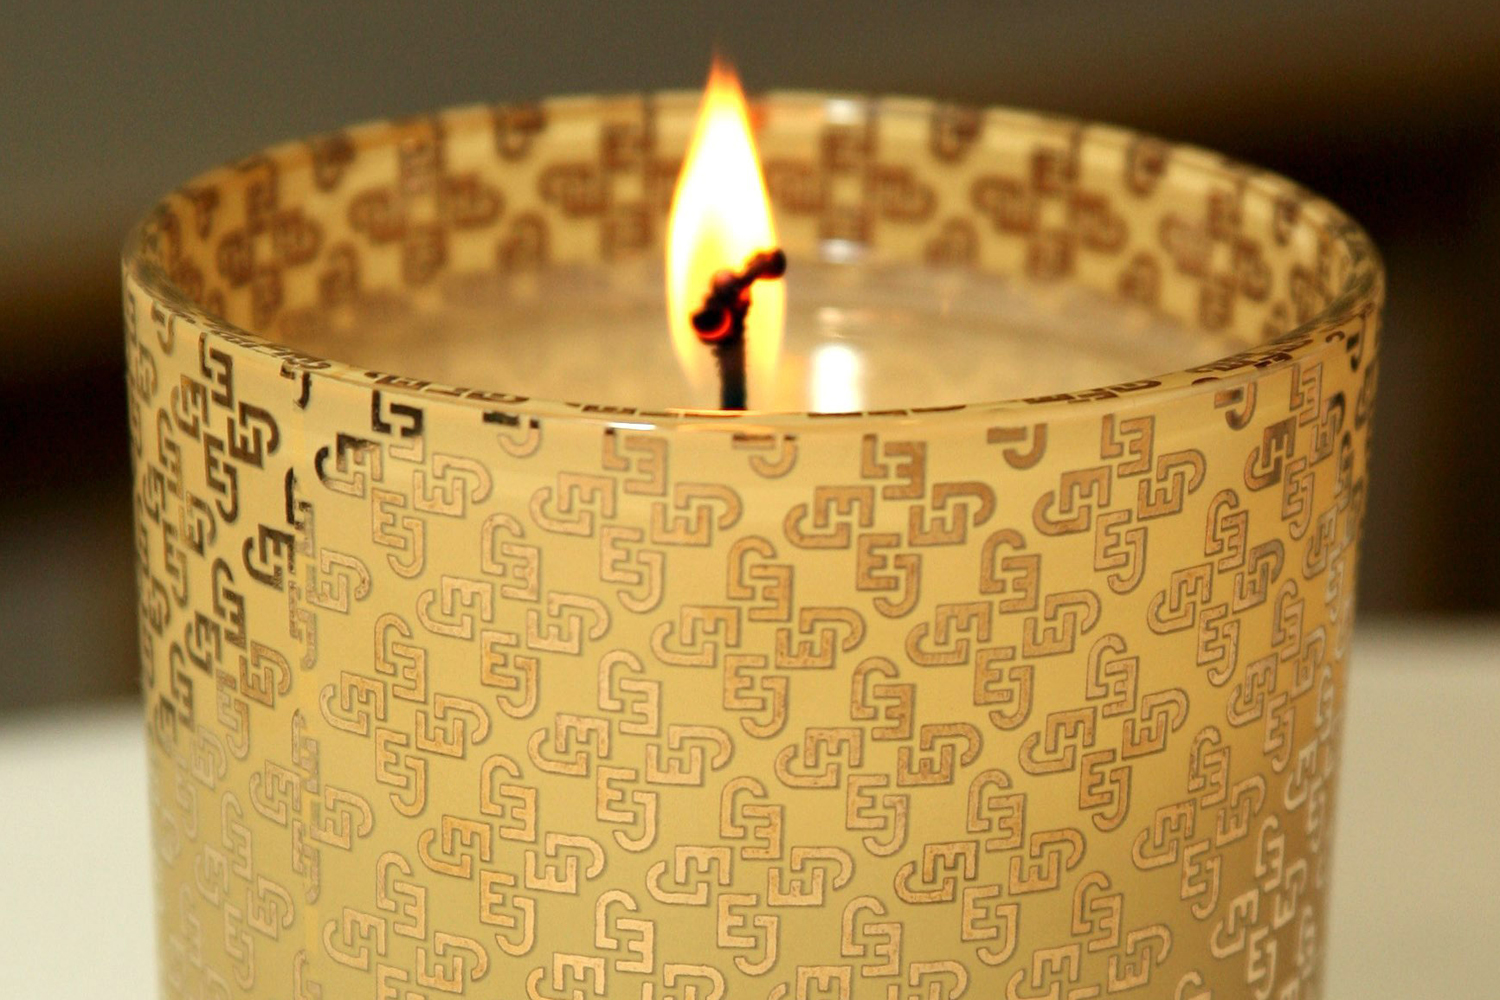 Turns out you've been burning candles wrong this whole time